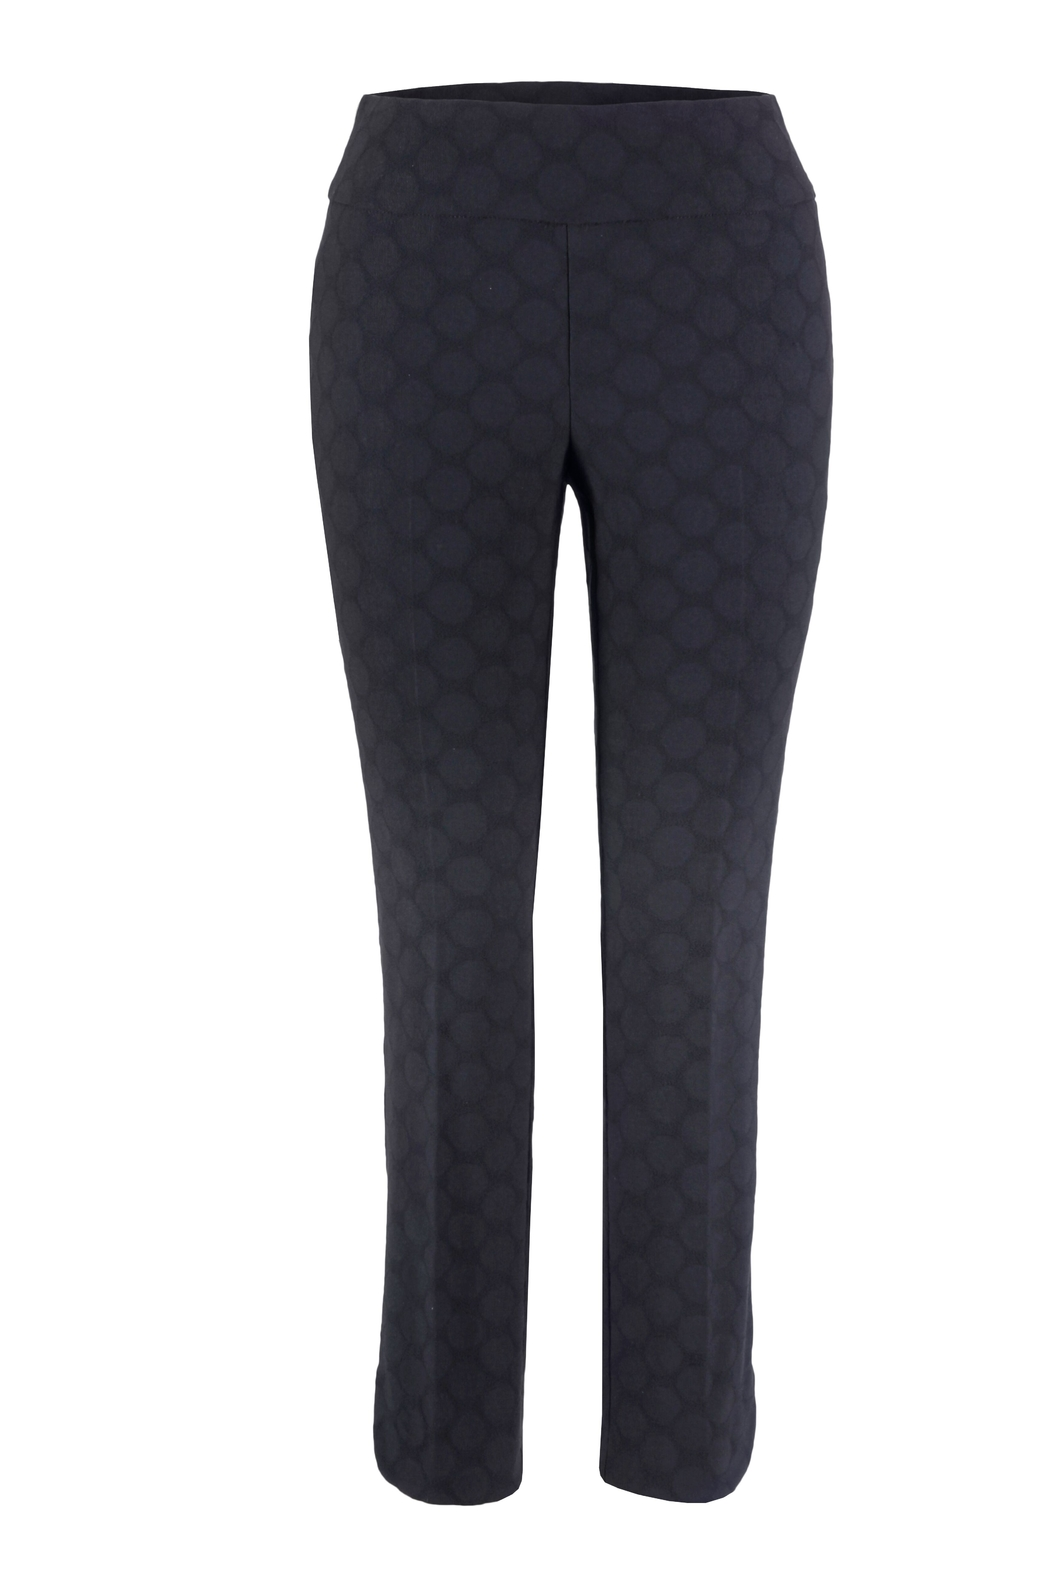 Up! Textured Circle Pant, Navy Blue - Front Cropped Image